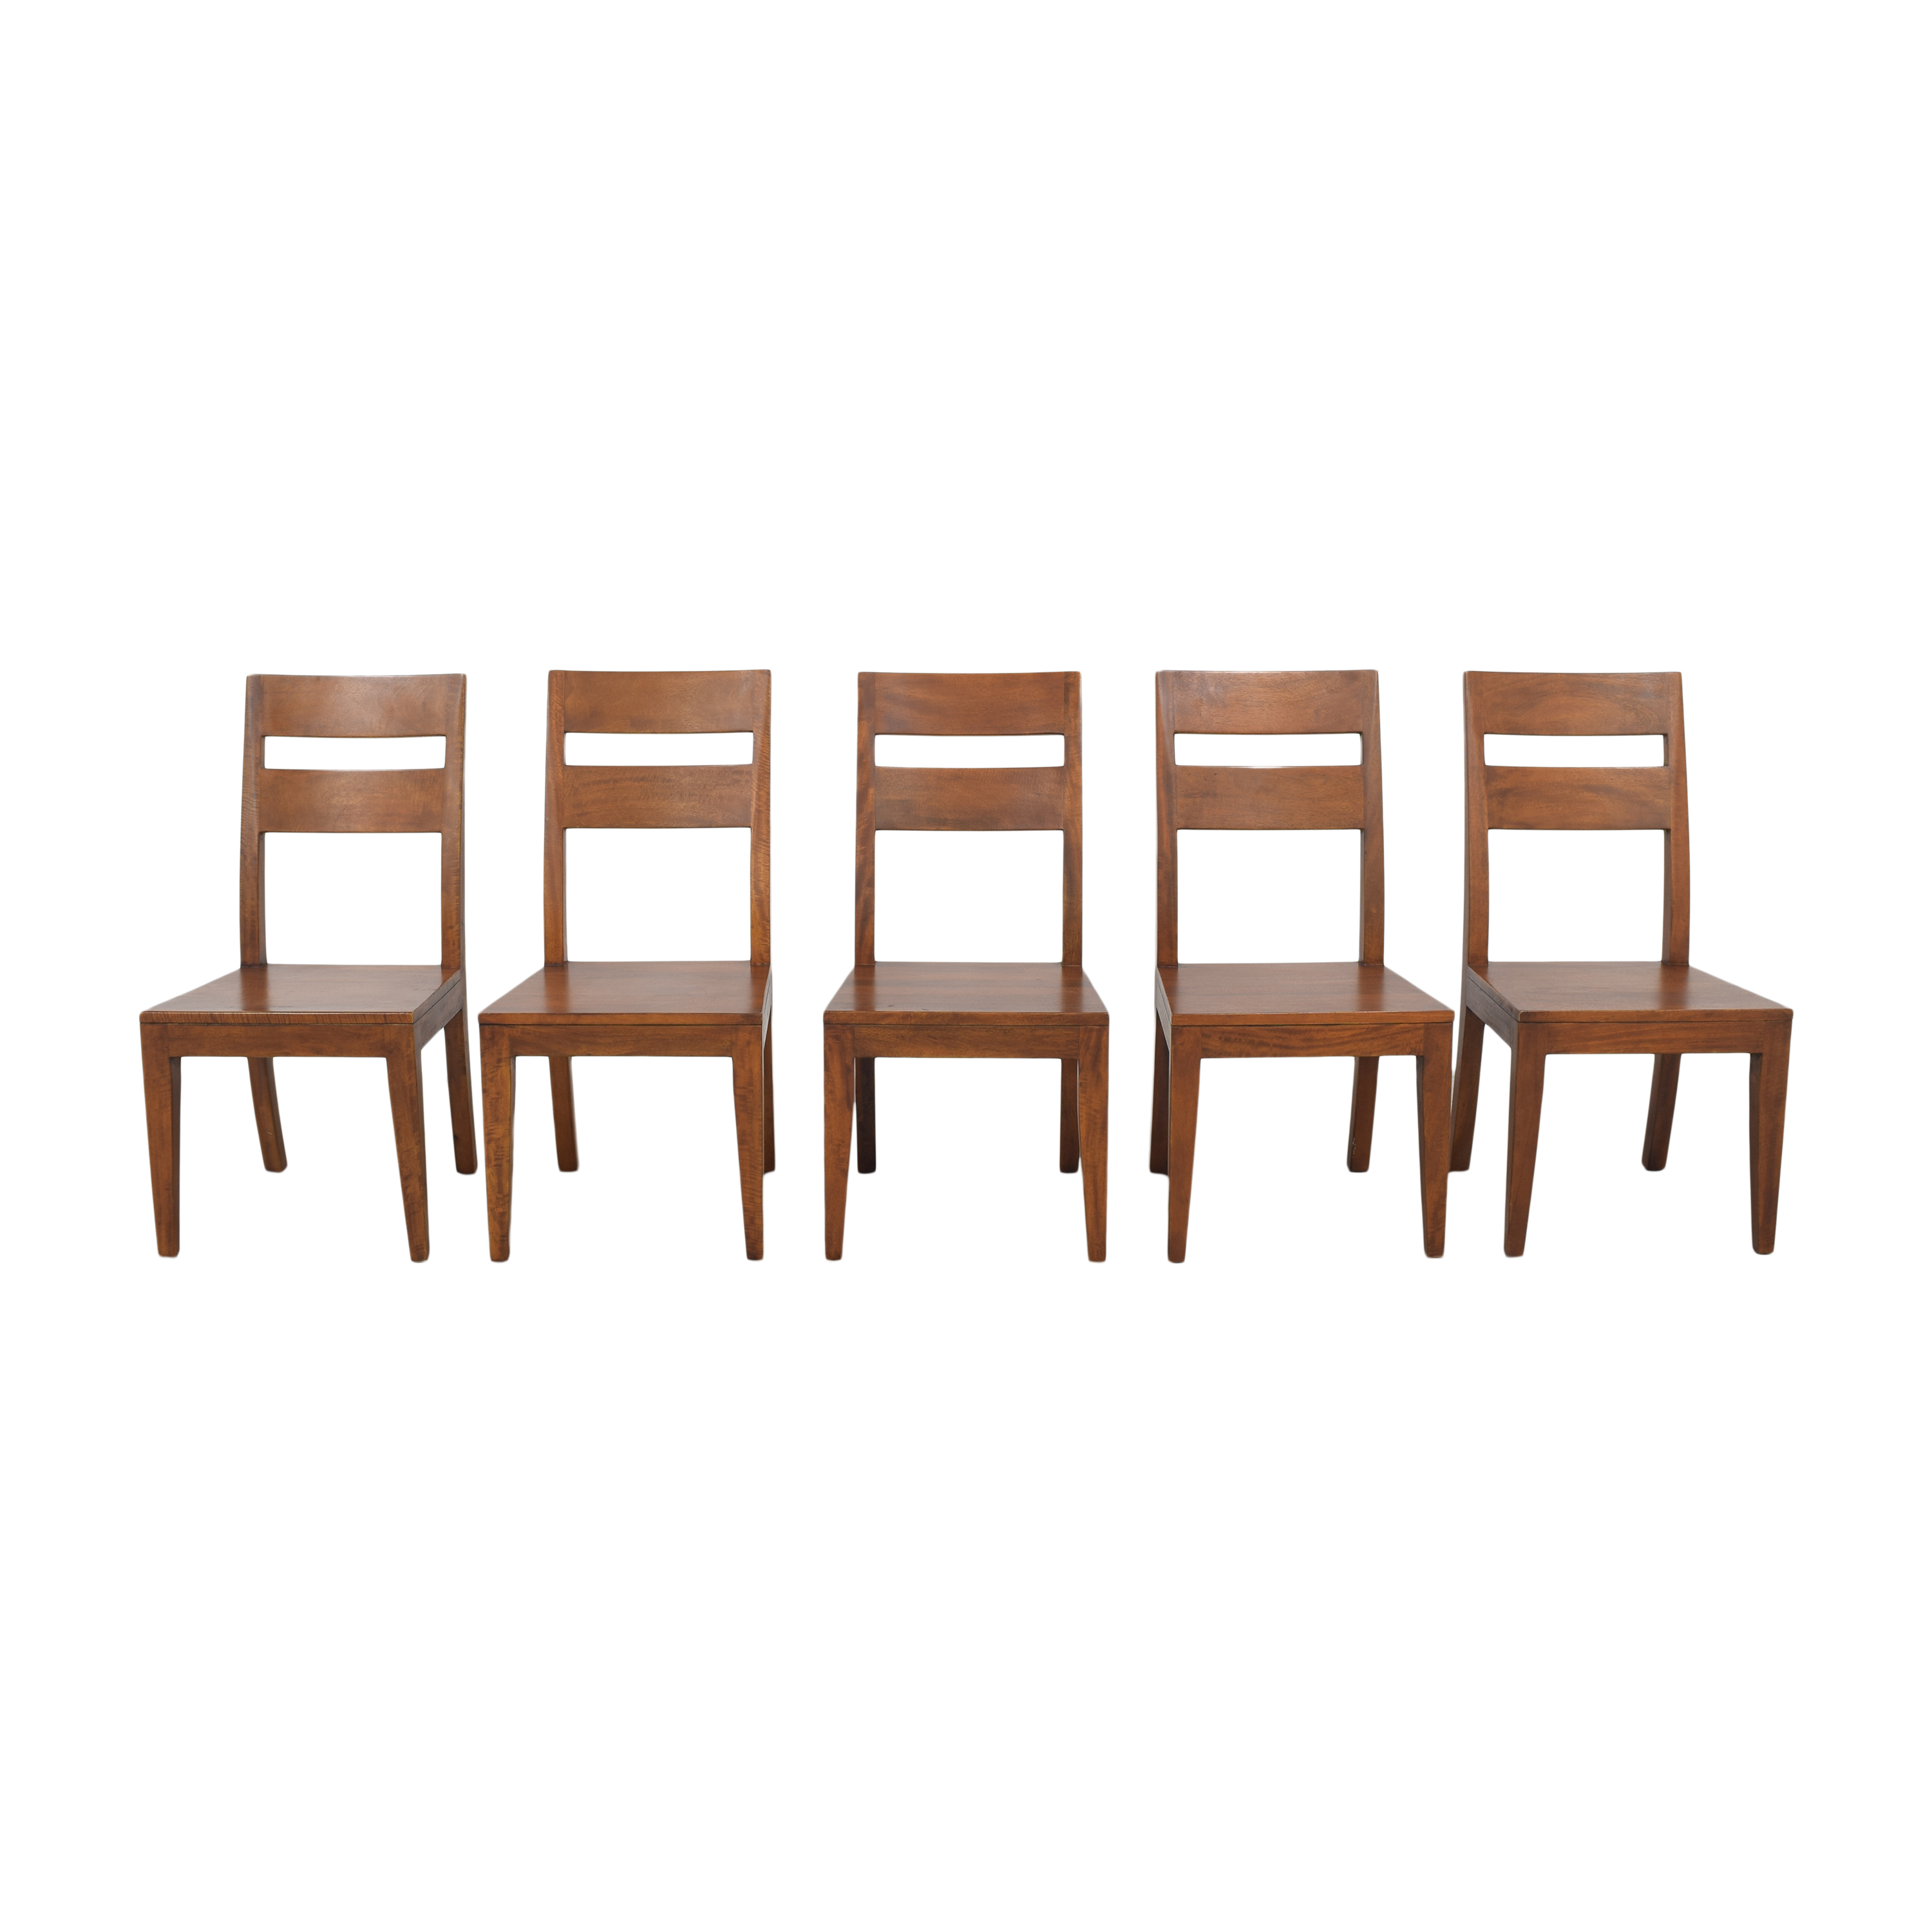 shop Create & Barrel Basque Dining Chairs Crate & Barrel